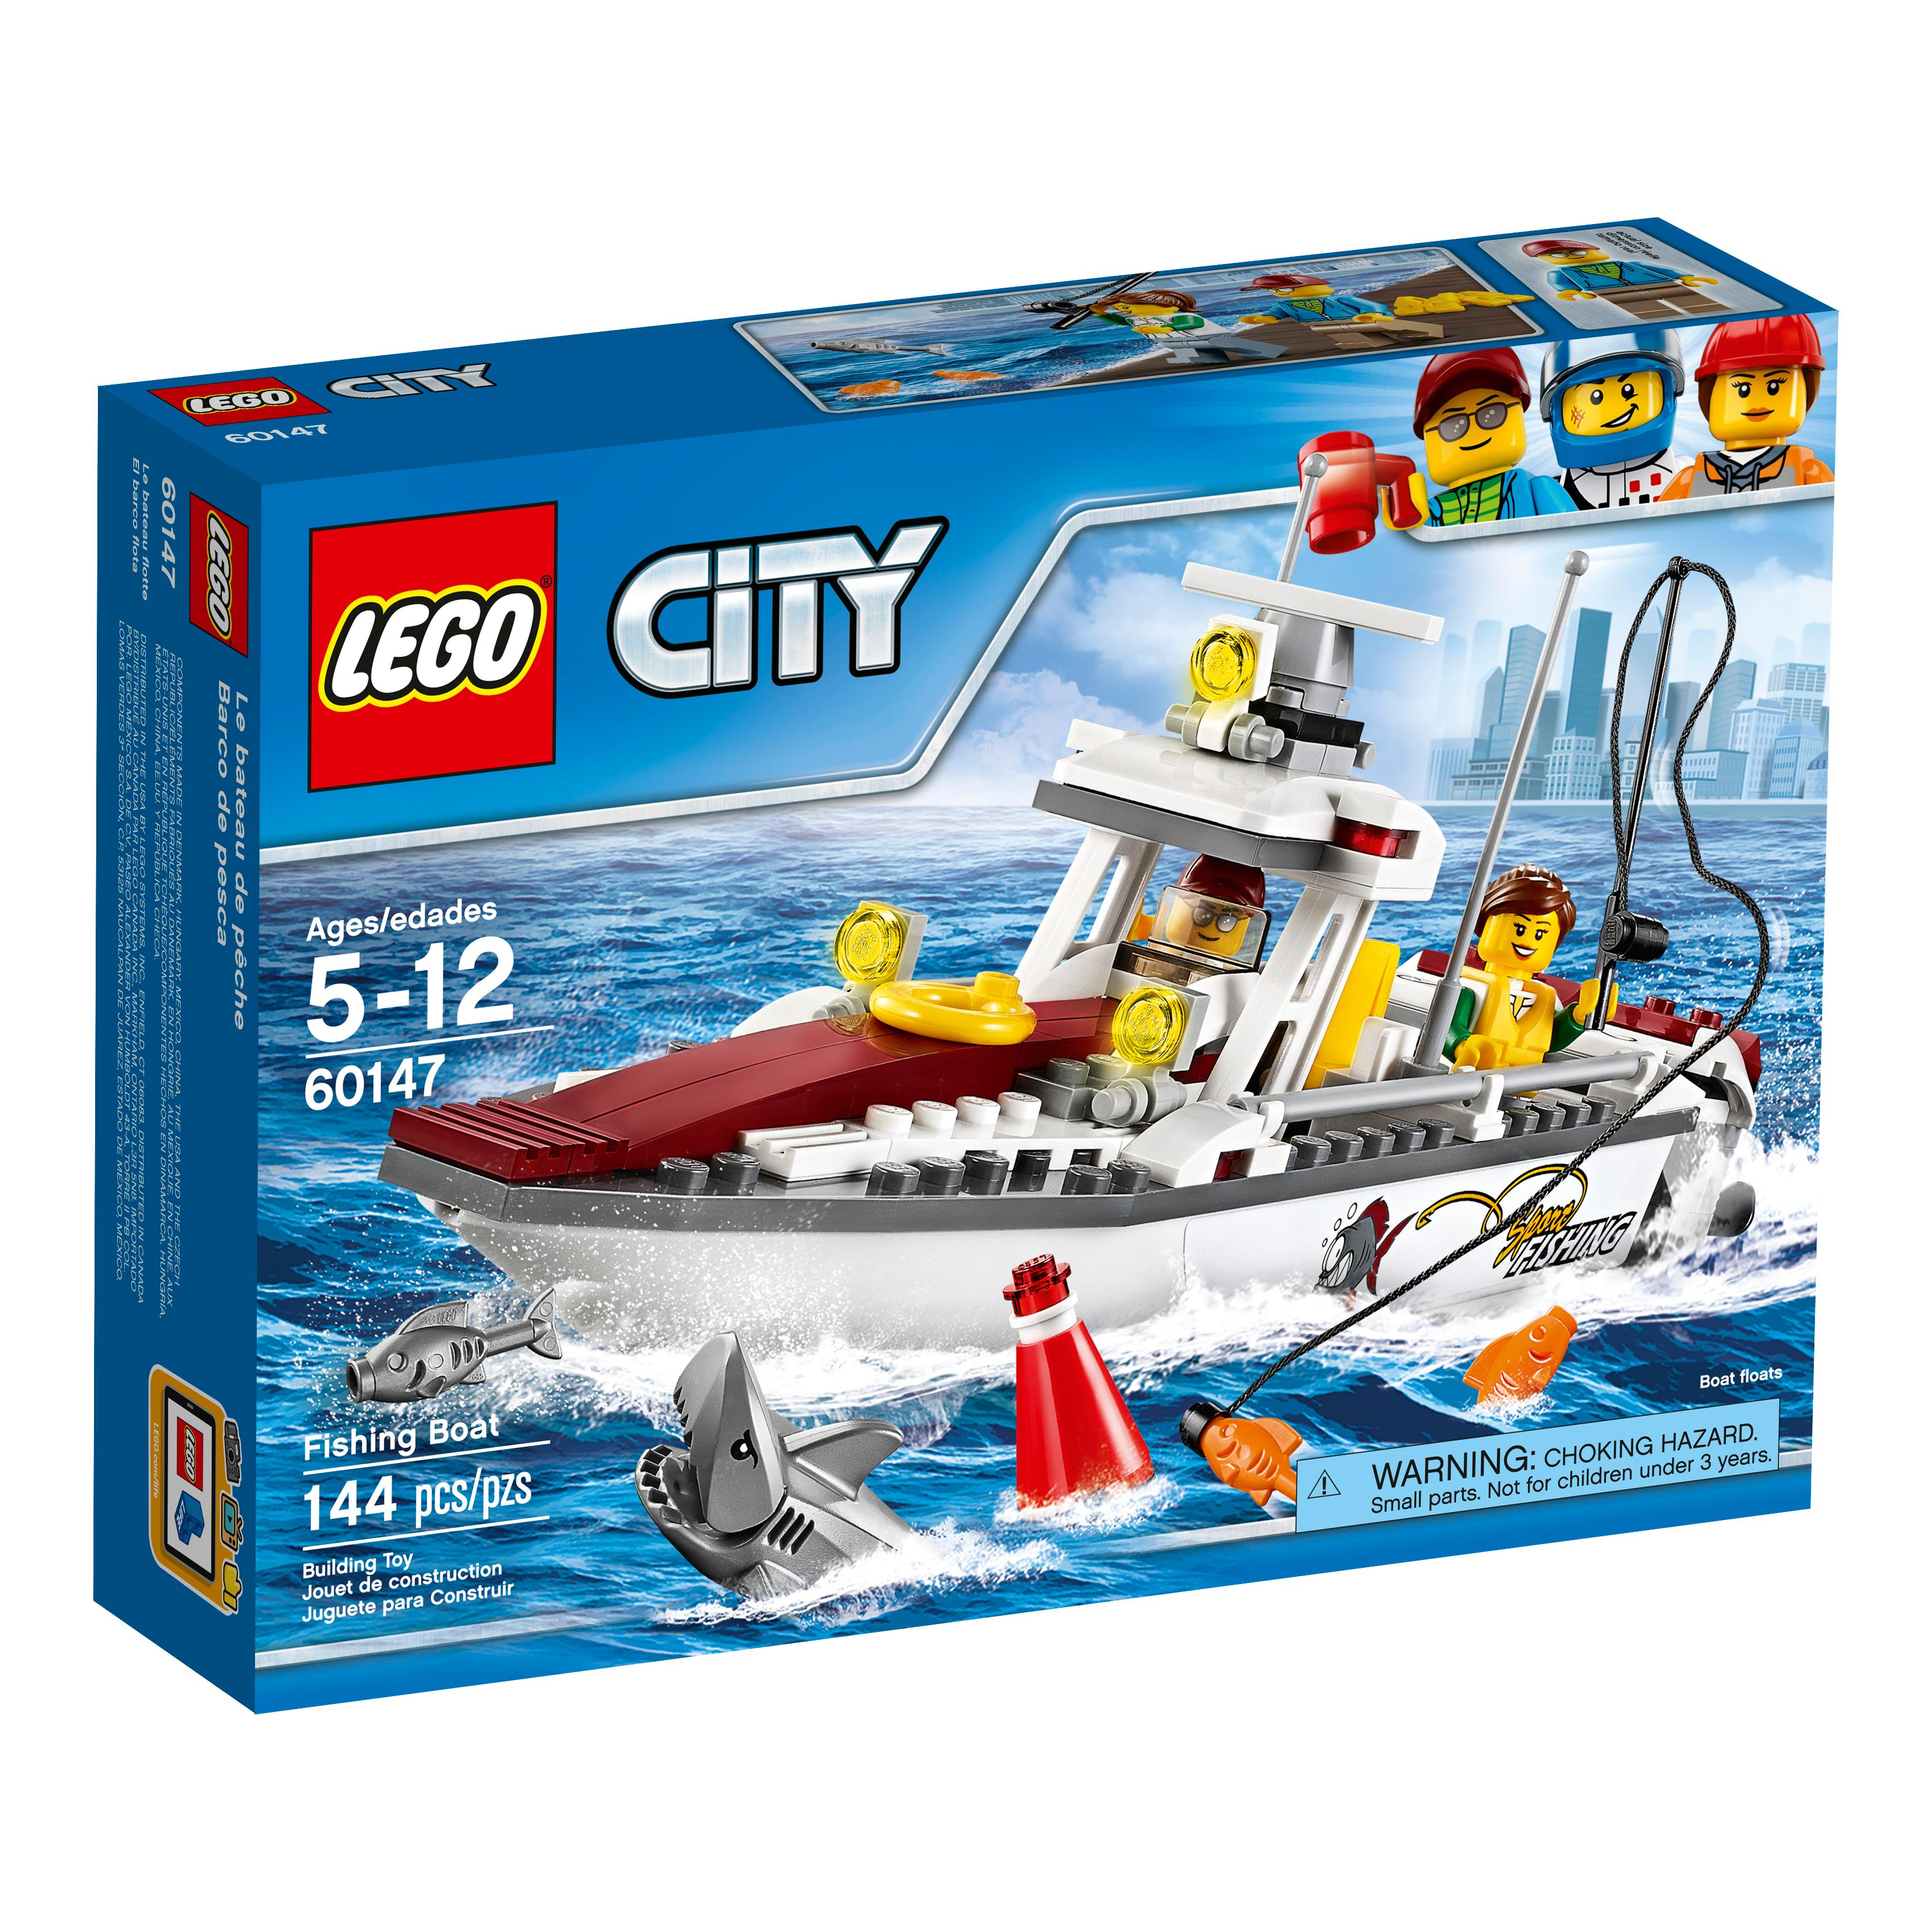 Lego city fishing boat 60147 creative play toy for Fishing toy set